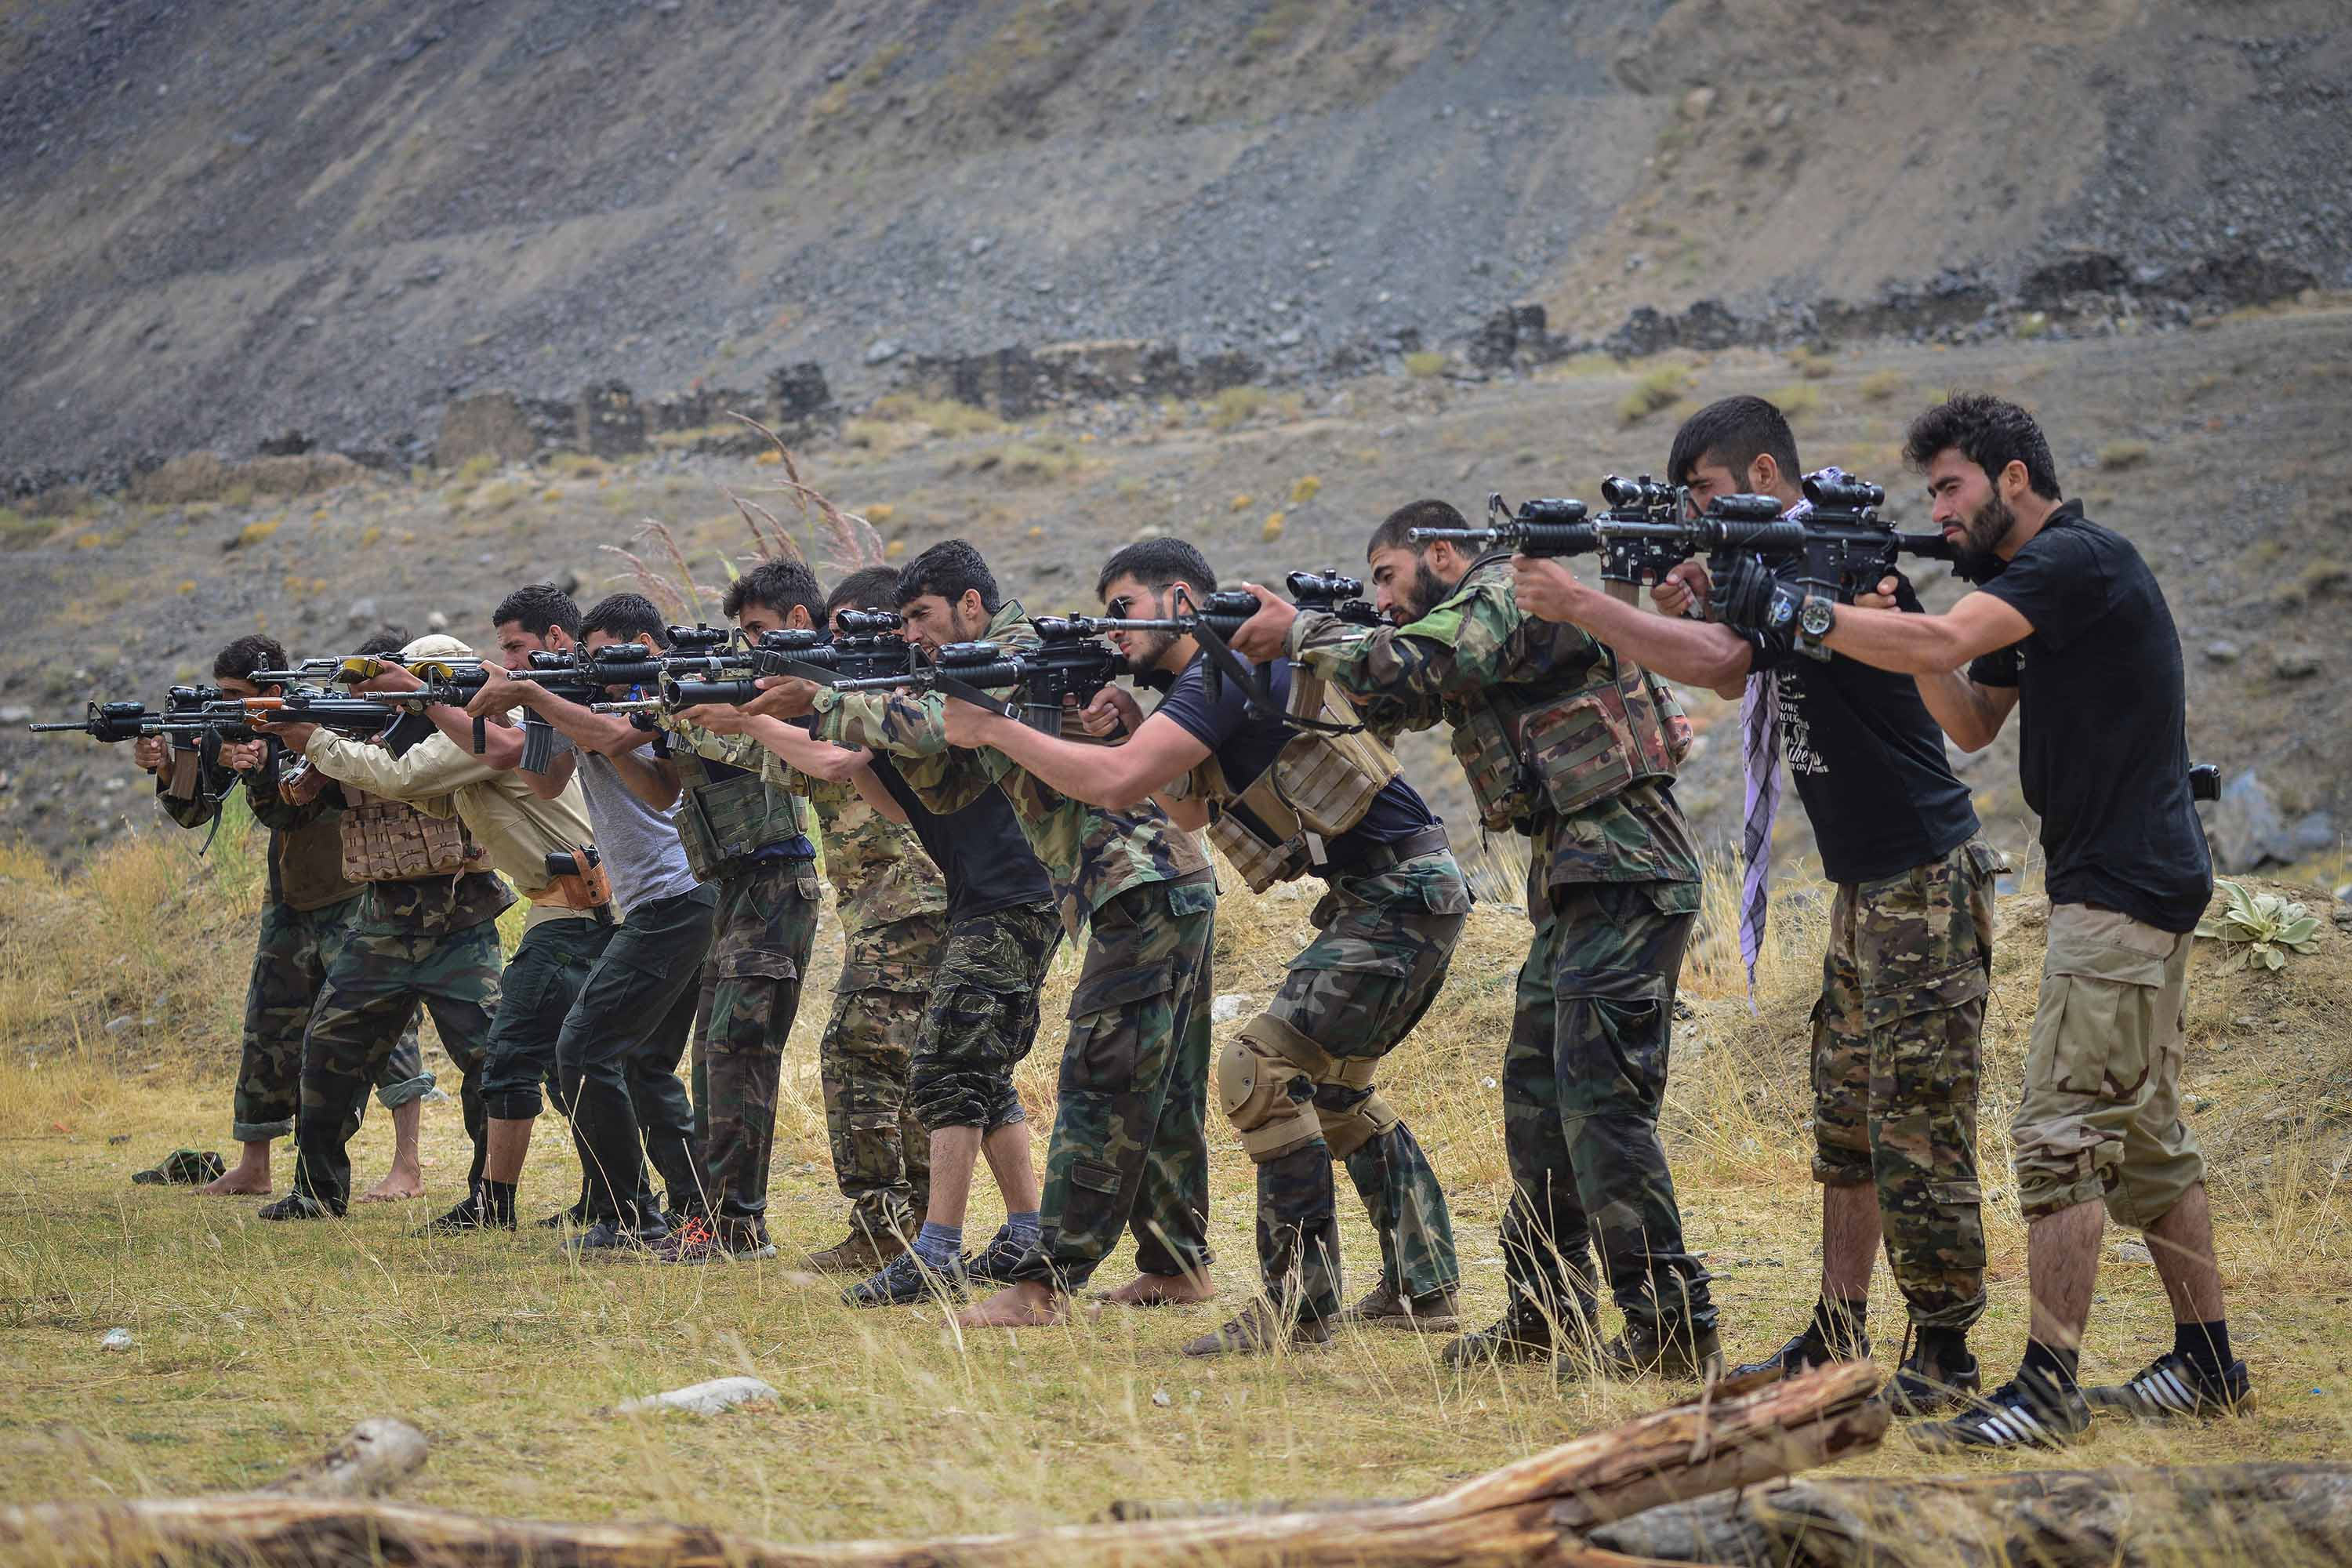 Afghan resistance movement forces take part in a military training in Panjshir province on August 30.